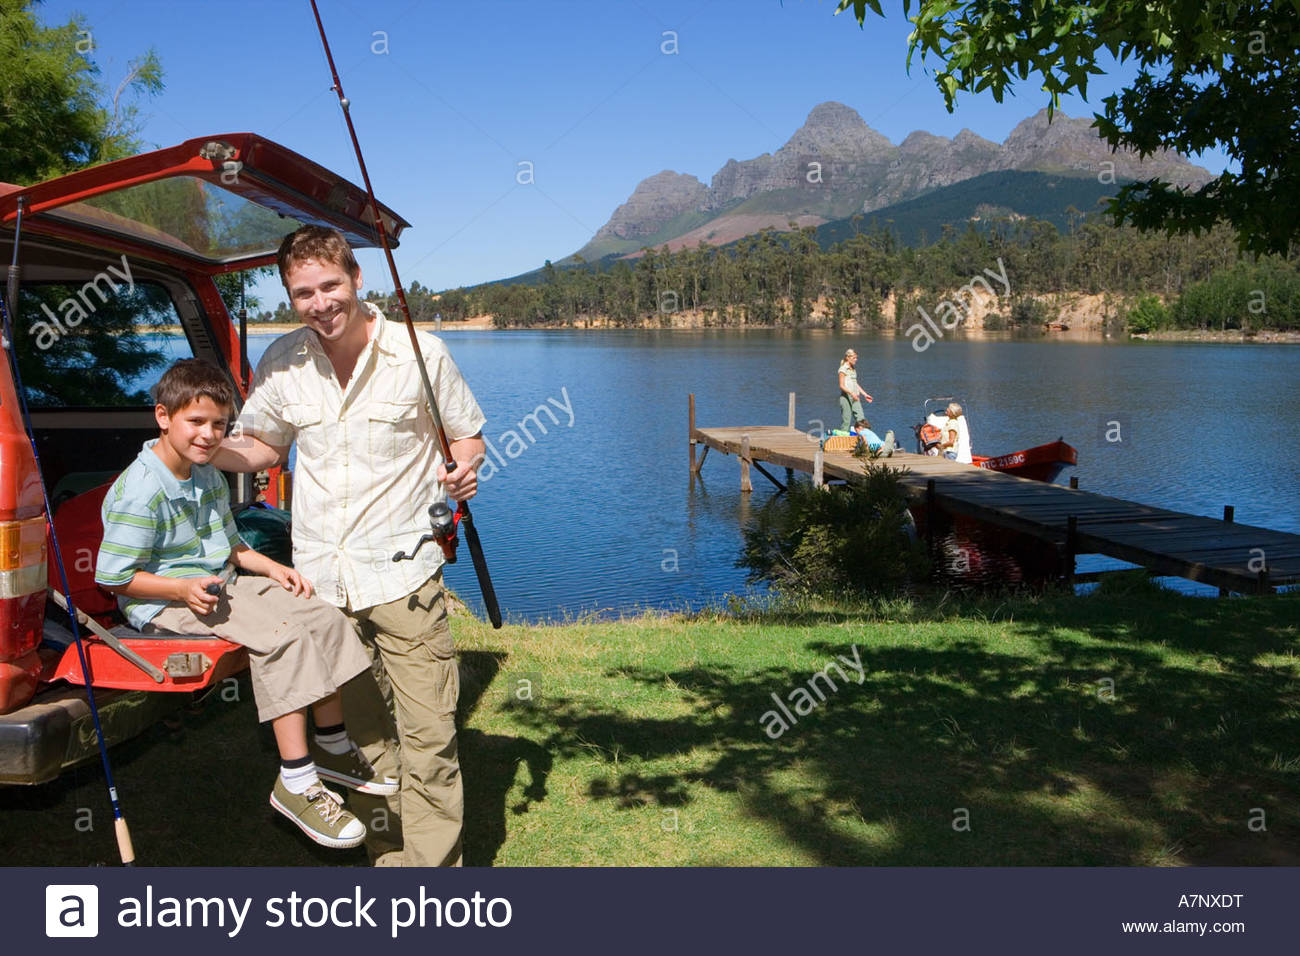 Father and son 8 10 with fishing rod beside SUV smiling portrait rest of family standing on lake jetty near boat Stock Photo